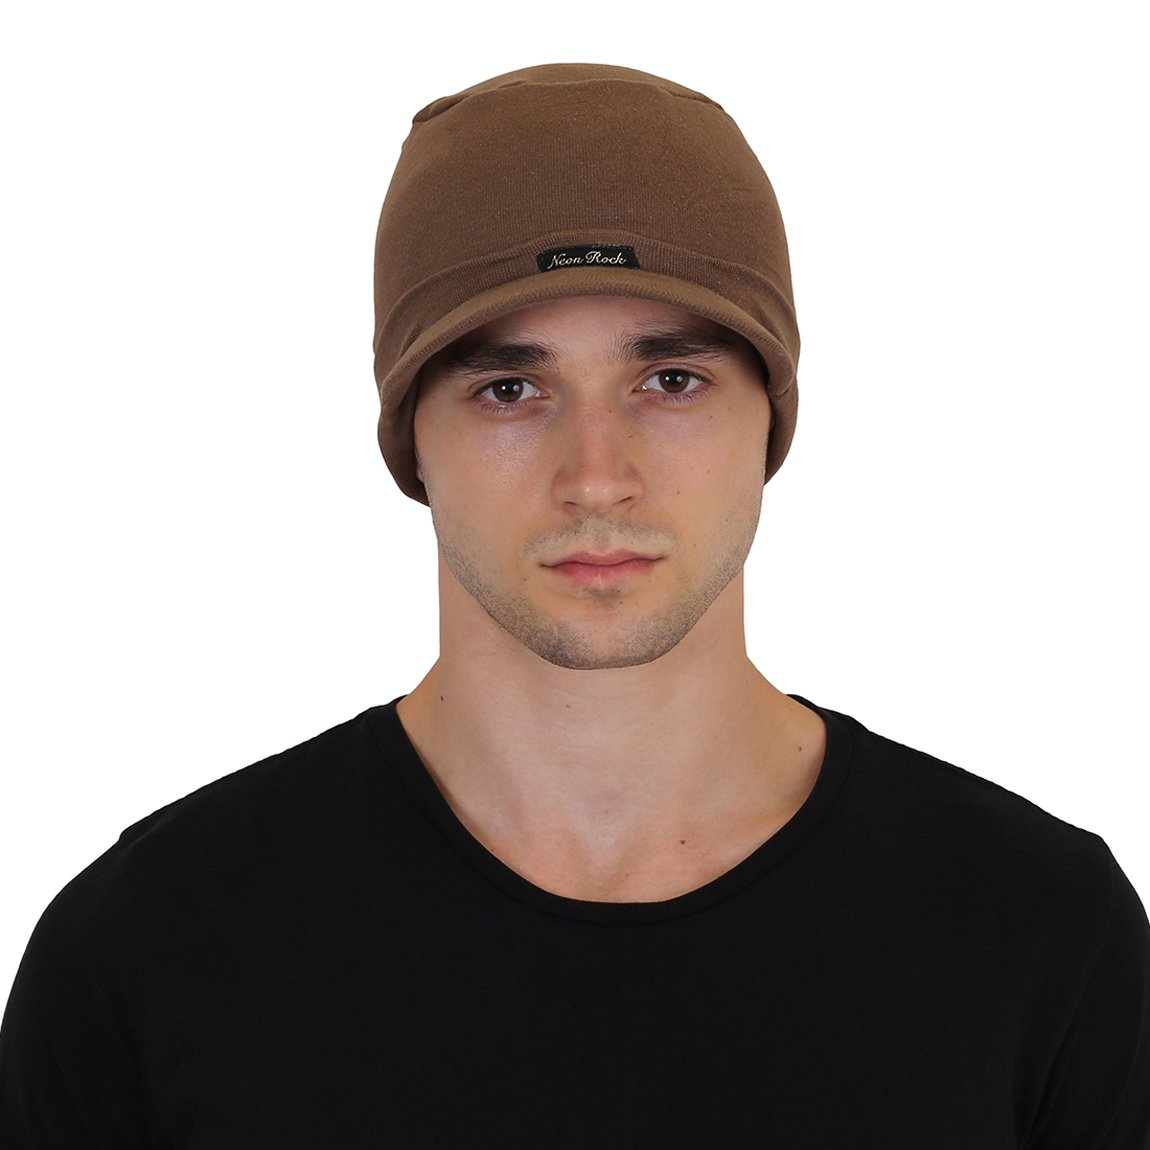 44050684d NR Beanies Cap /Summer Cap/ Winter Cap/ Autumn Cap(C92/M0030)